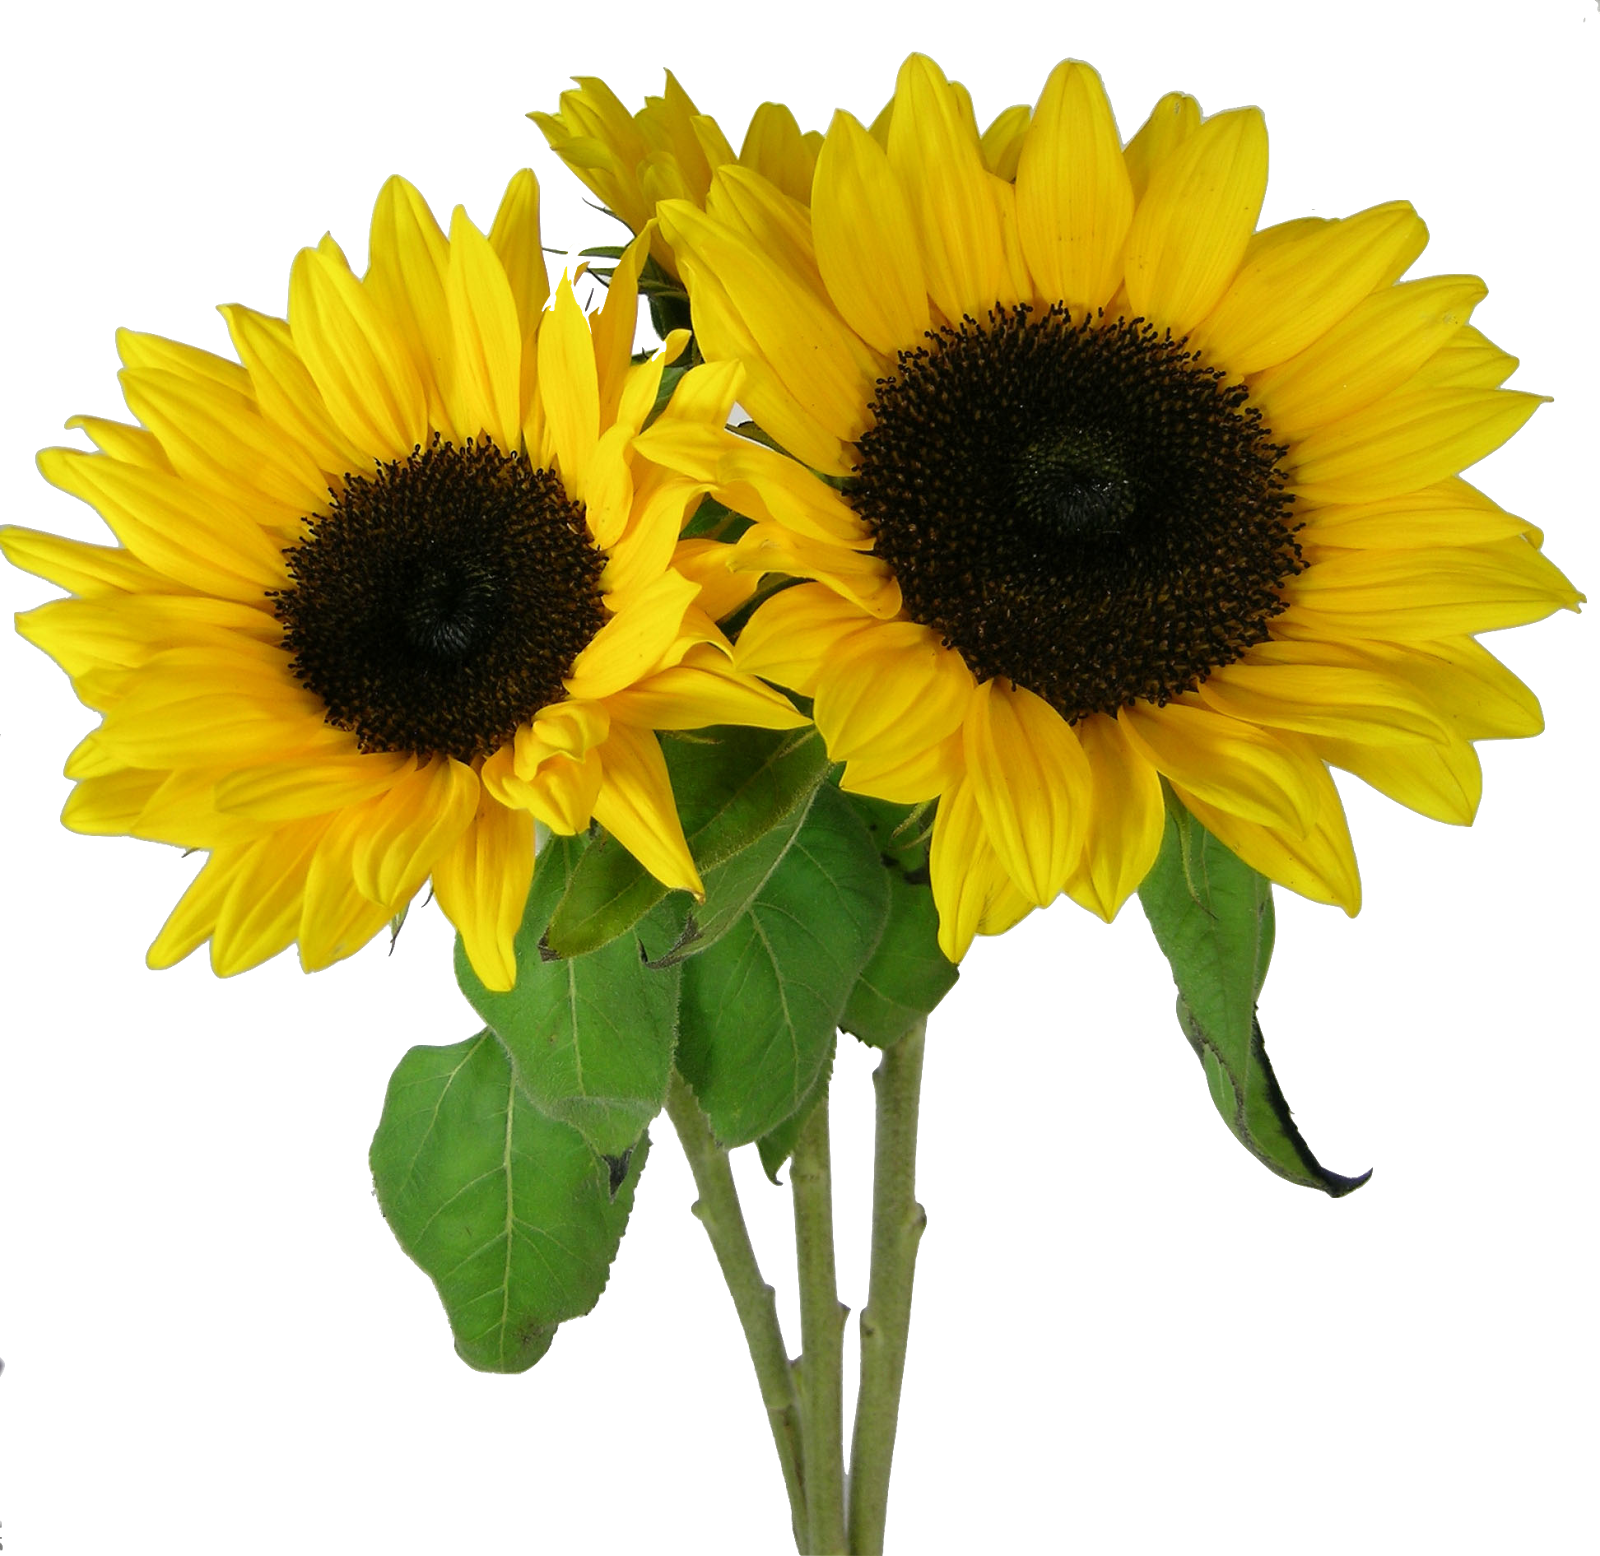 Sunflowers PNG - 6586